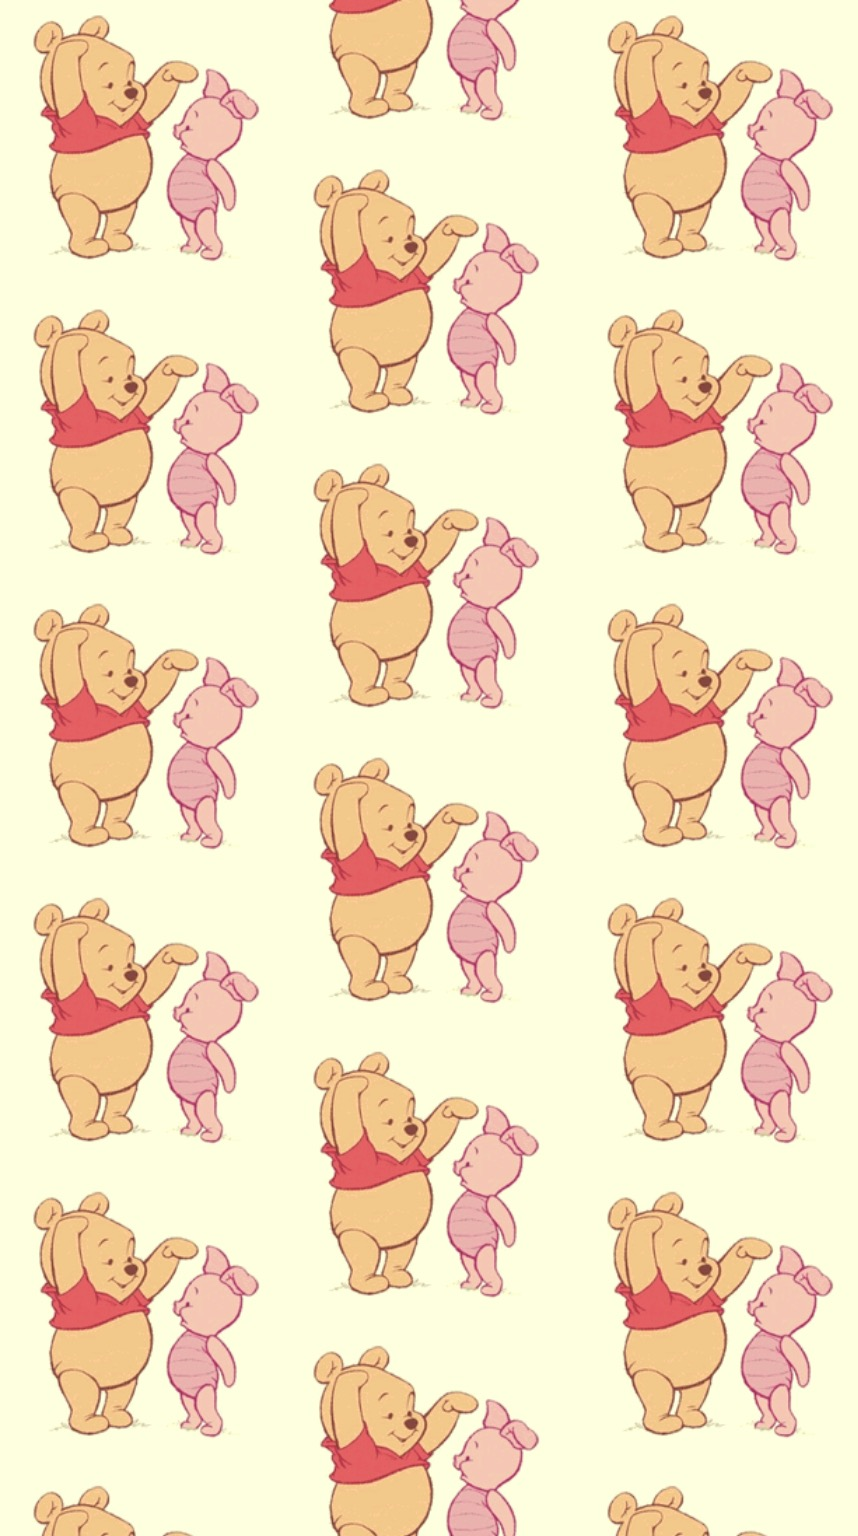 Cute Pooh Bear Wallpapers Patterns Backgrounds Wallpaper Images Winnie The Pooh Hd